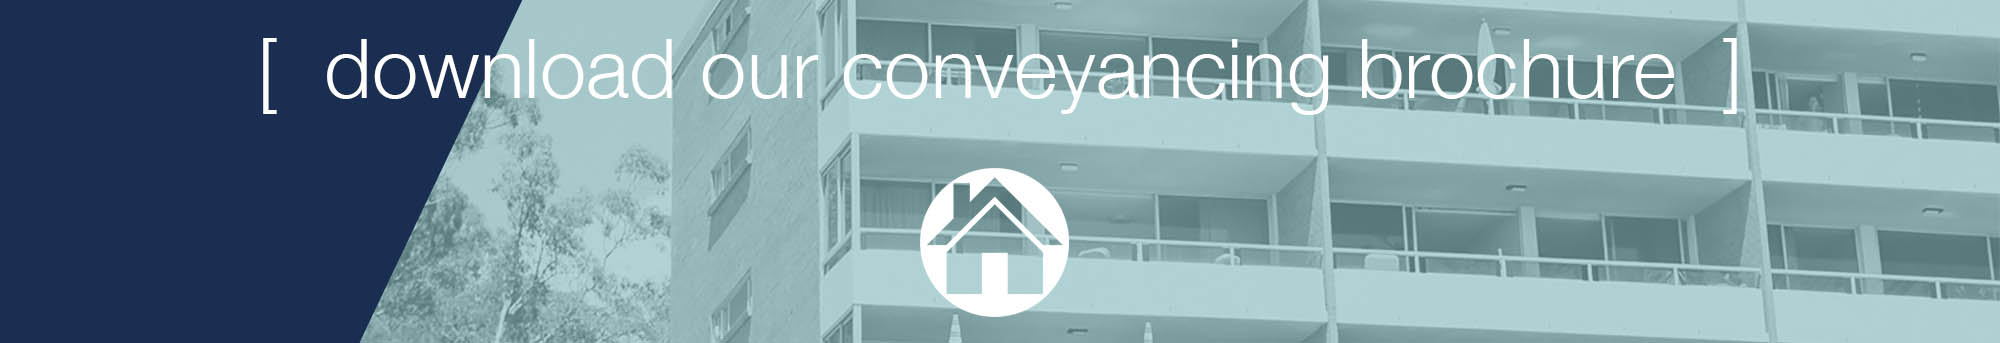 The conveyancing solicitors of Dylan & Inns Gold Coast and Brisbane can assist you to buy or sell property and ensure your legal interests are protected at all times.